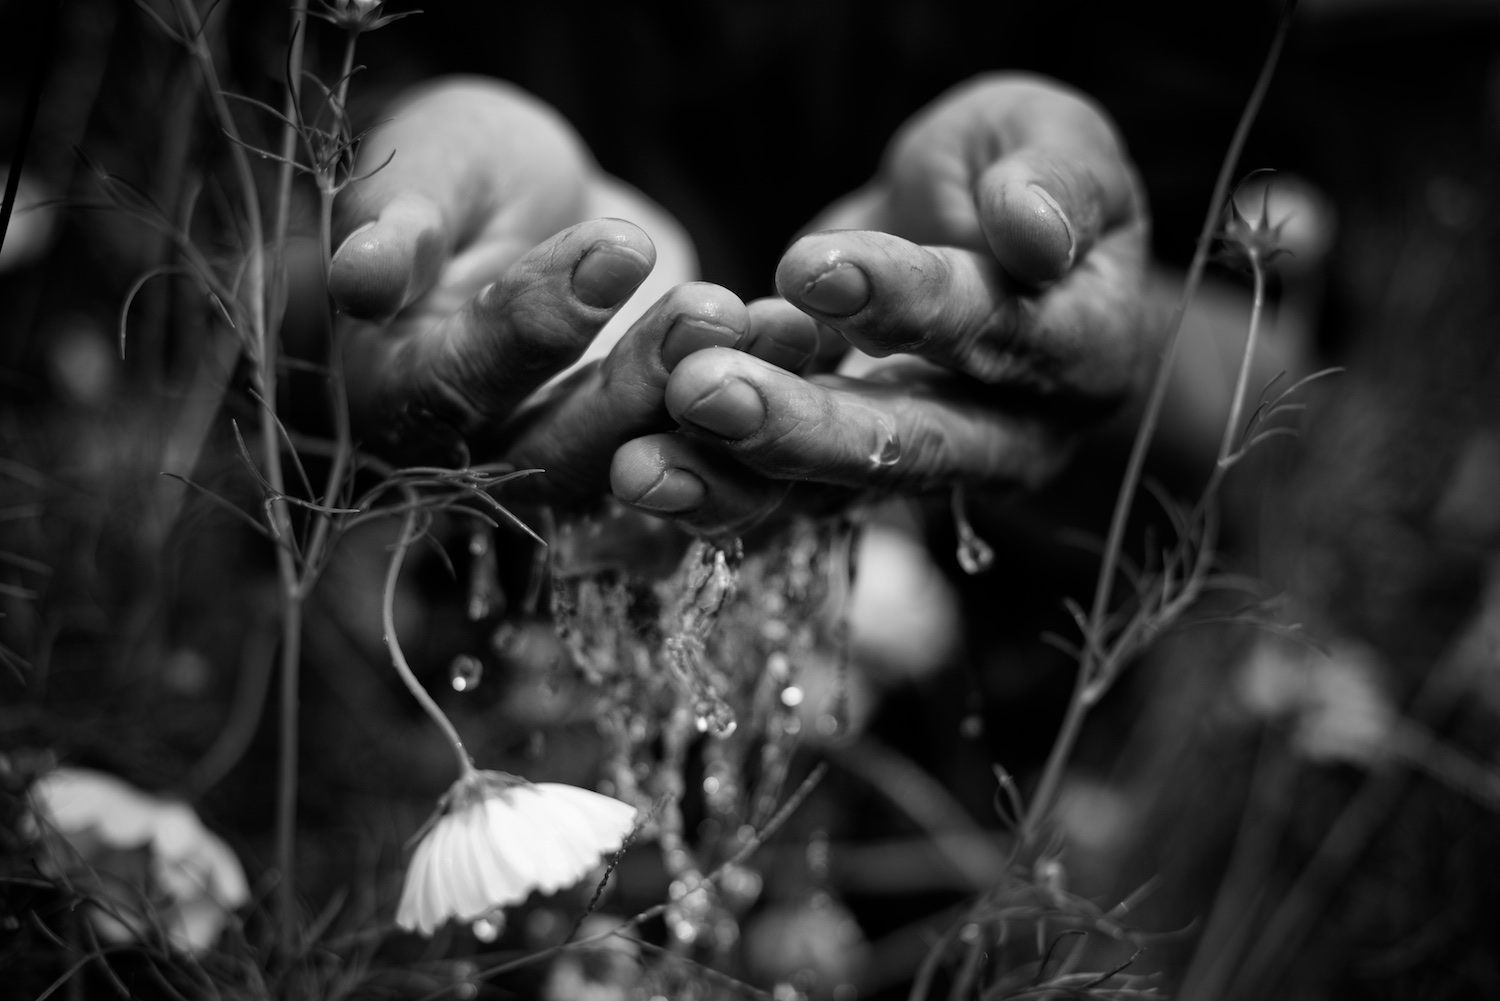 Black and White Photograph, Midwest,Water, Hands, Flowers, Interior Design, Wall Art